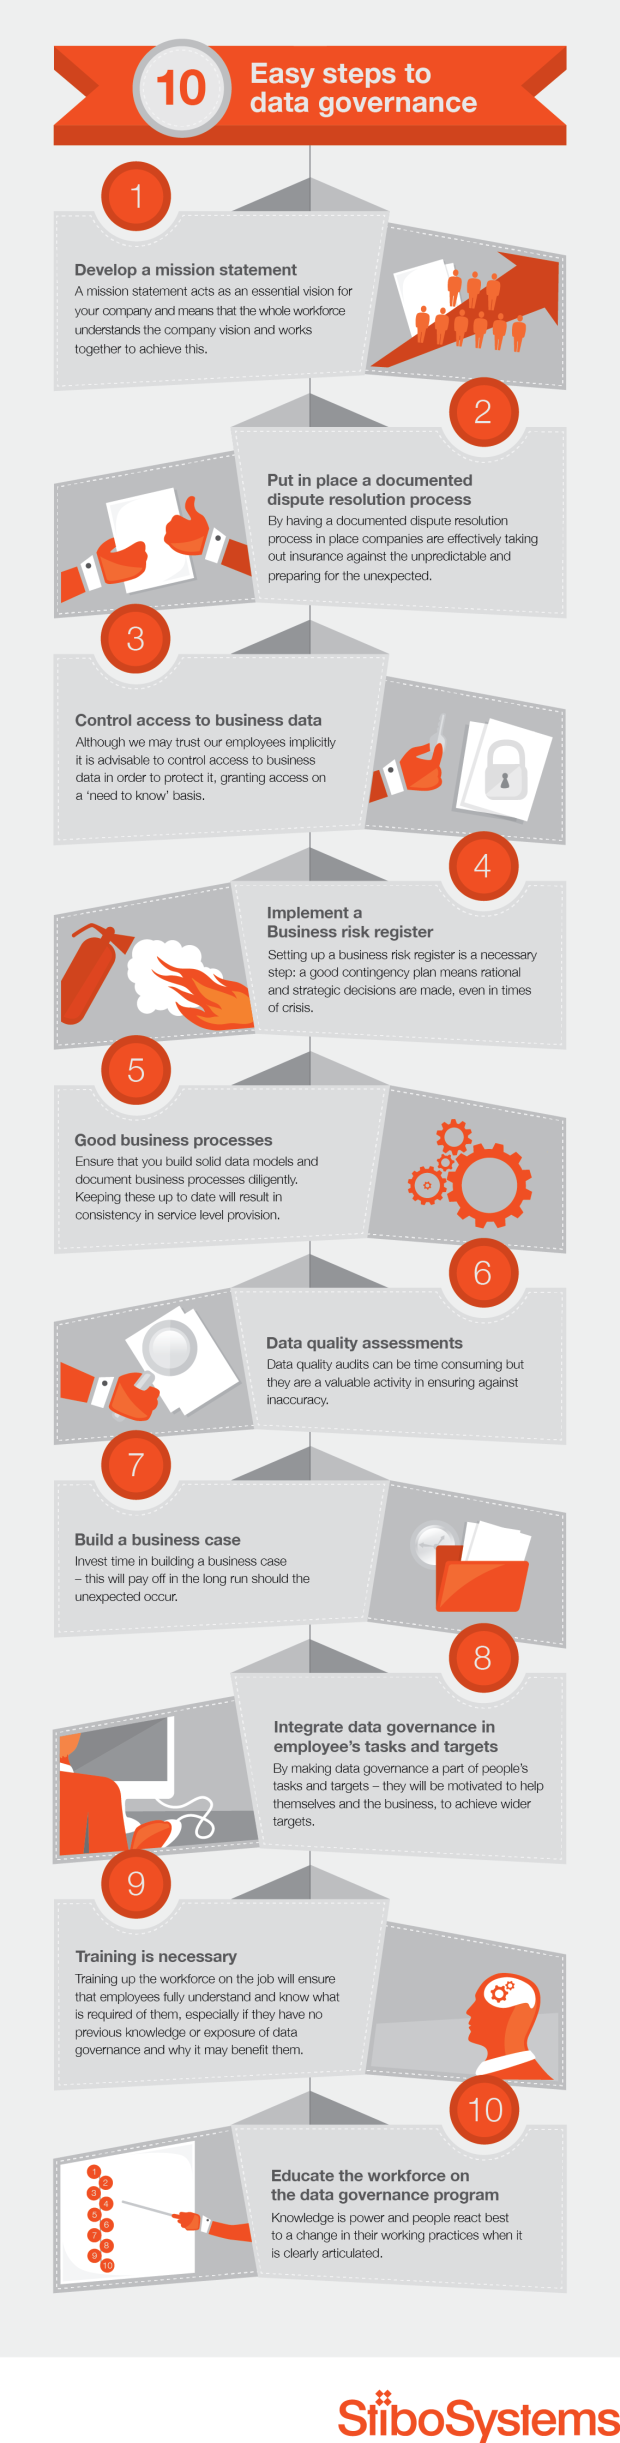 infographic_10-easy-steps-to-data-governance_stibo-systems_uk